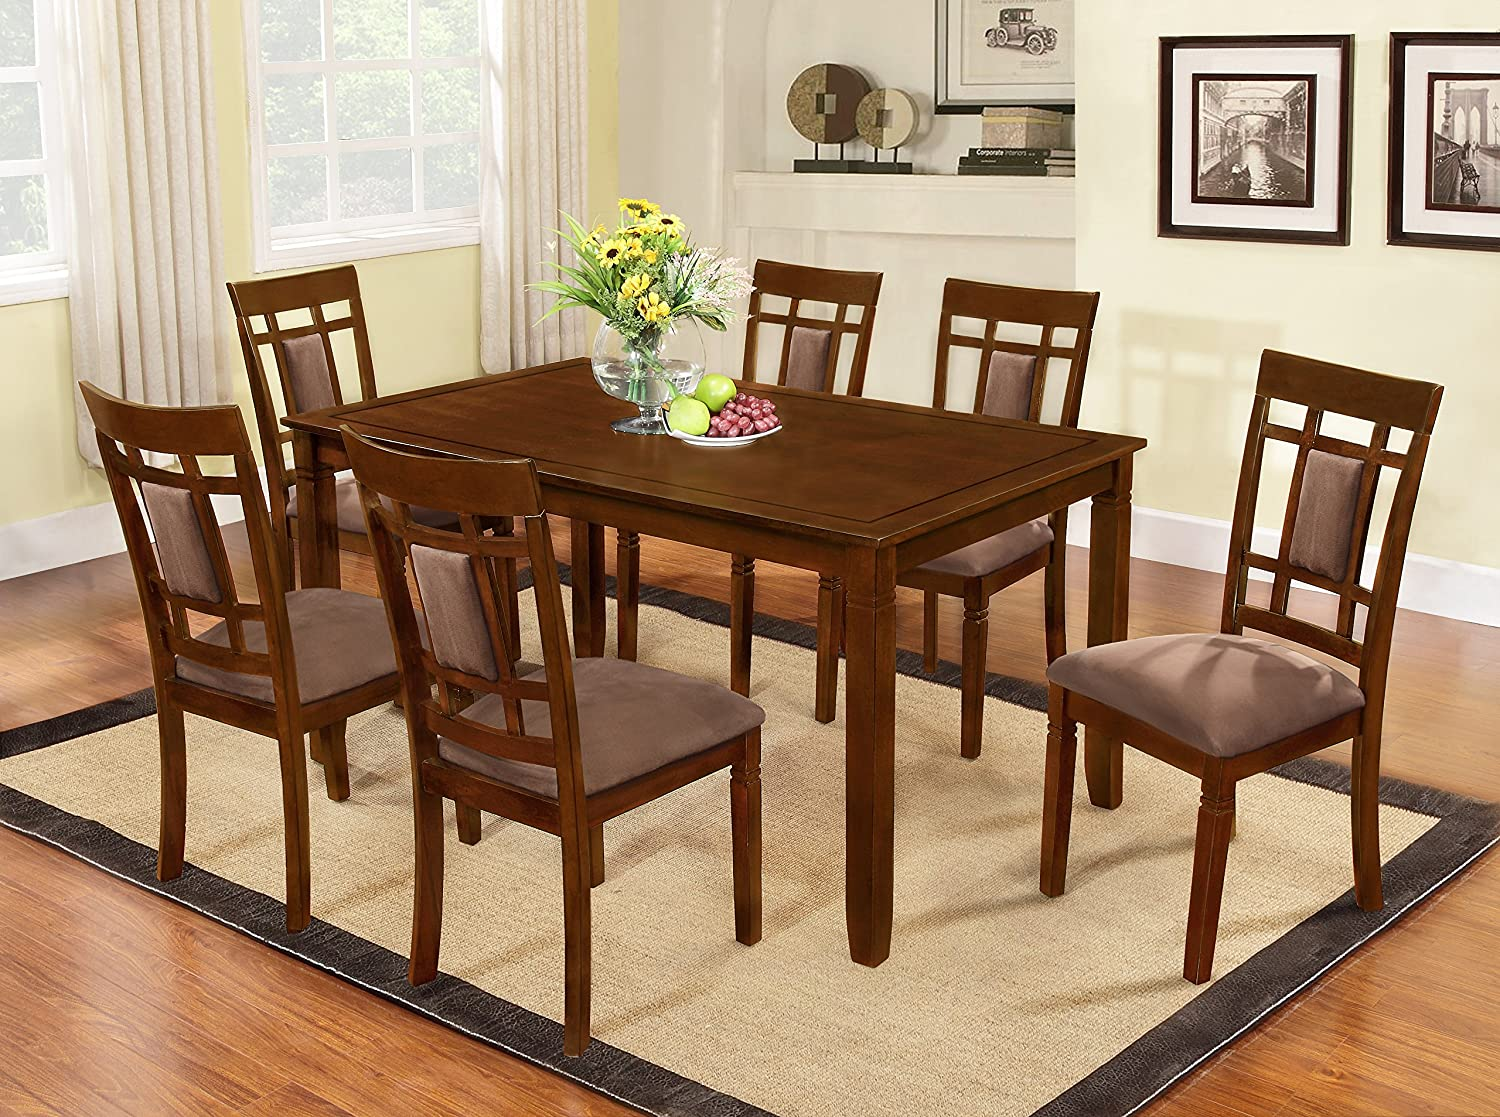 amazoncom the room style 7 piece cherry finish solid wood dining table set table chair sets - Wooden Dining Table With Chairs